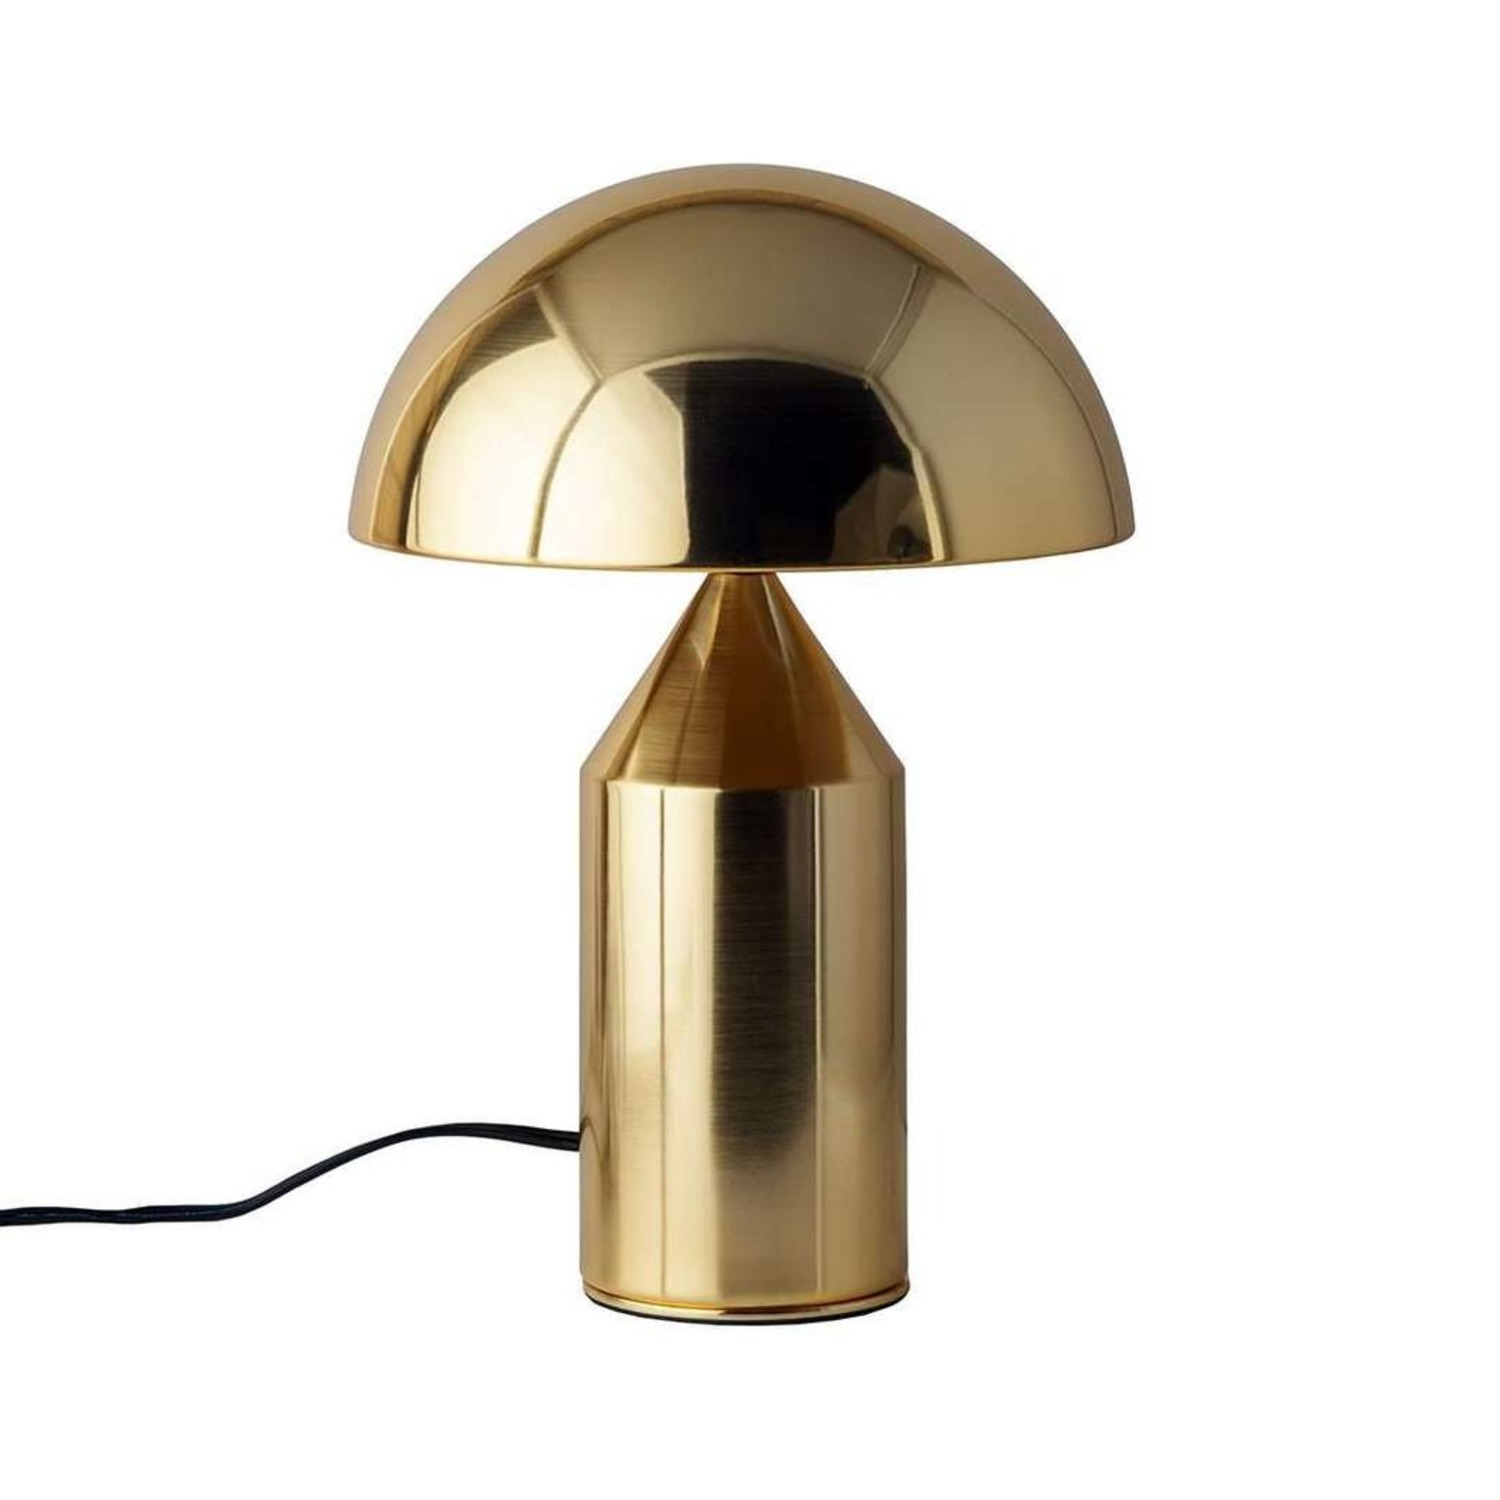 France and Son Vico Magistretti Inspired Lamp - image-1